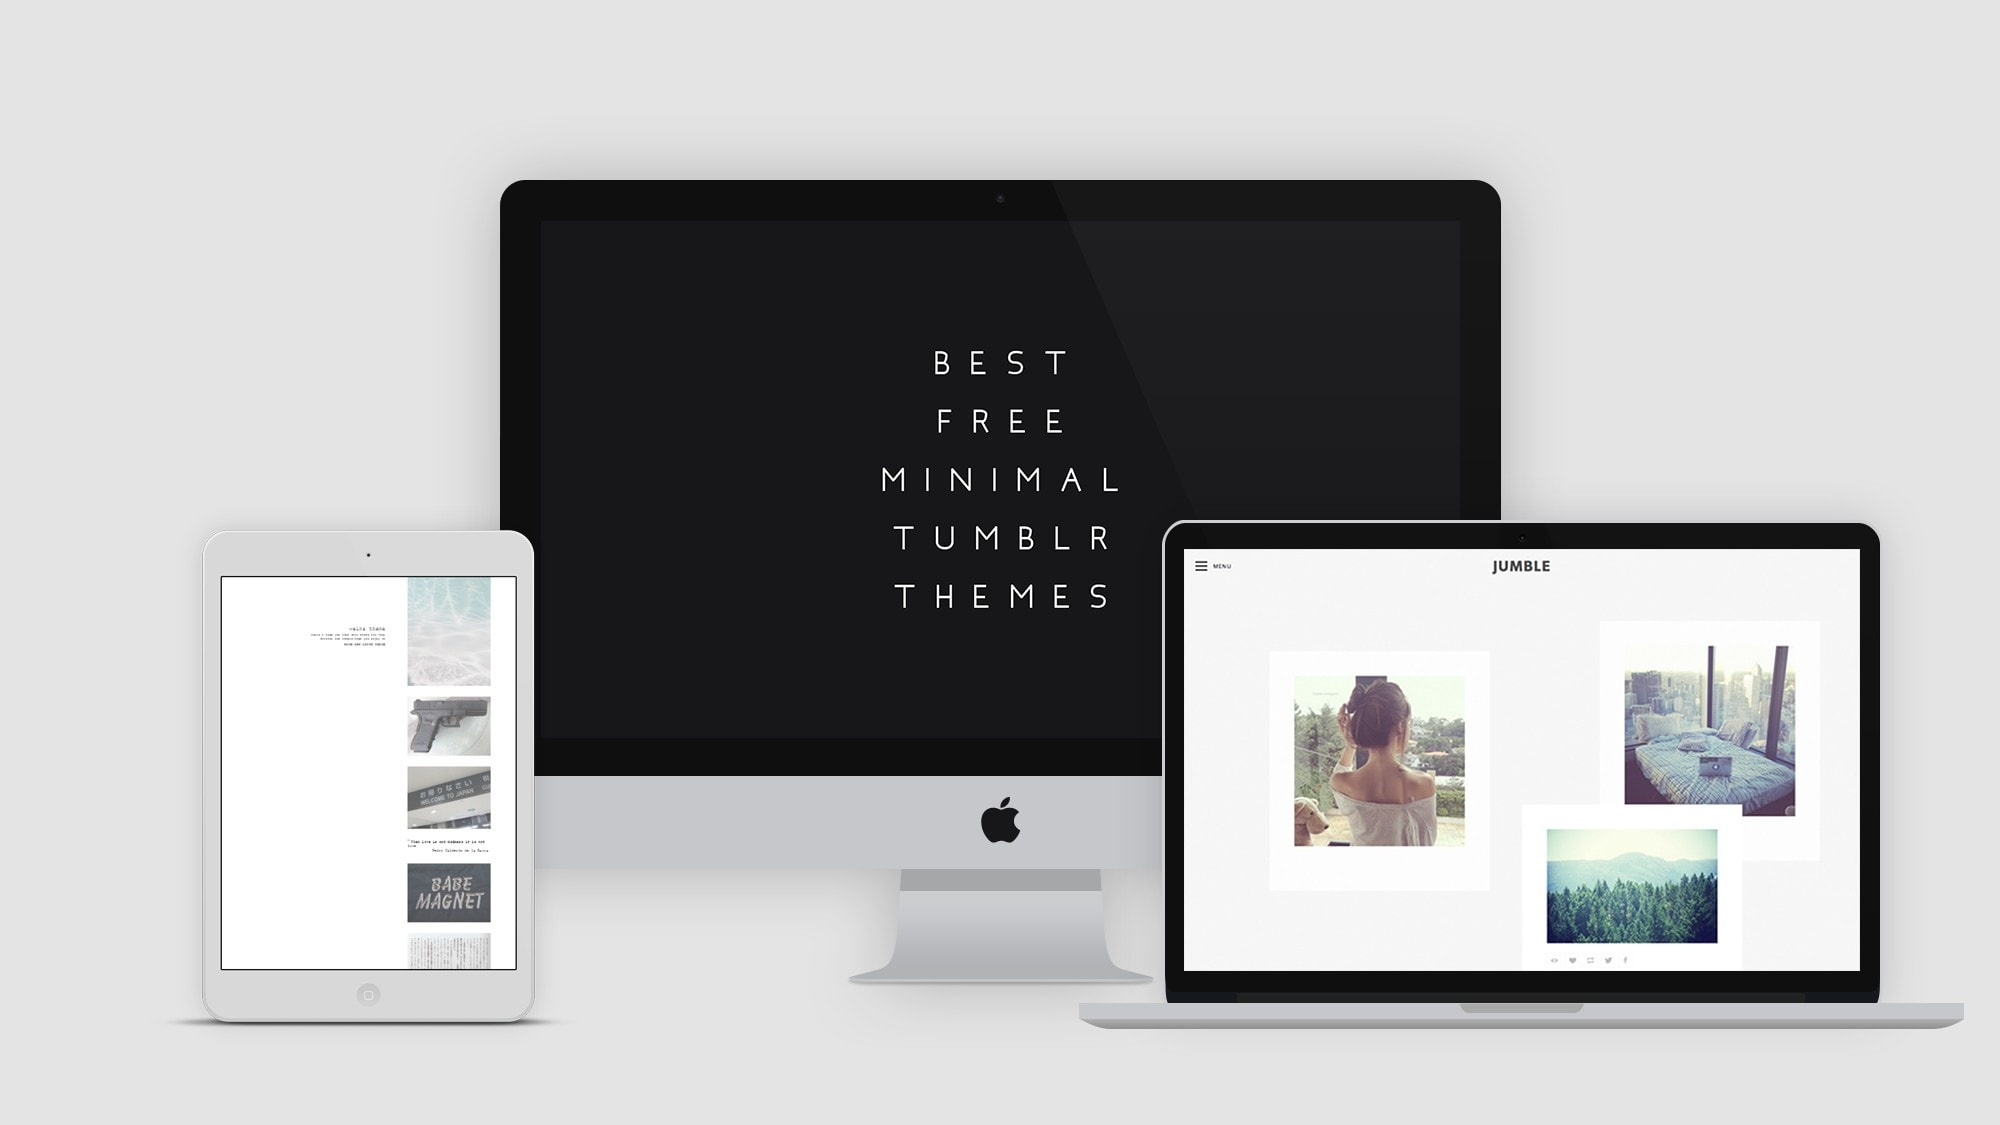 16 best free minimal tumblr themes hipsthetic free minimal tumblr themes toneelgroepblik Image collections